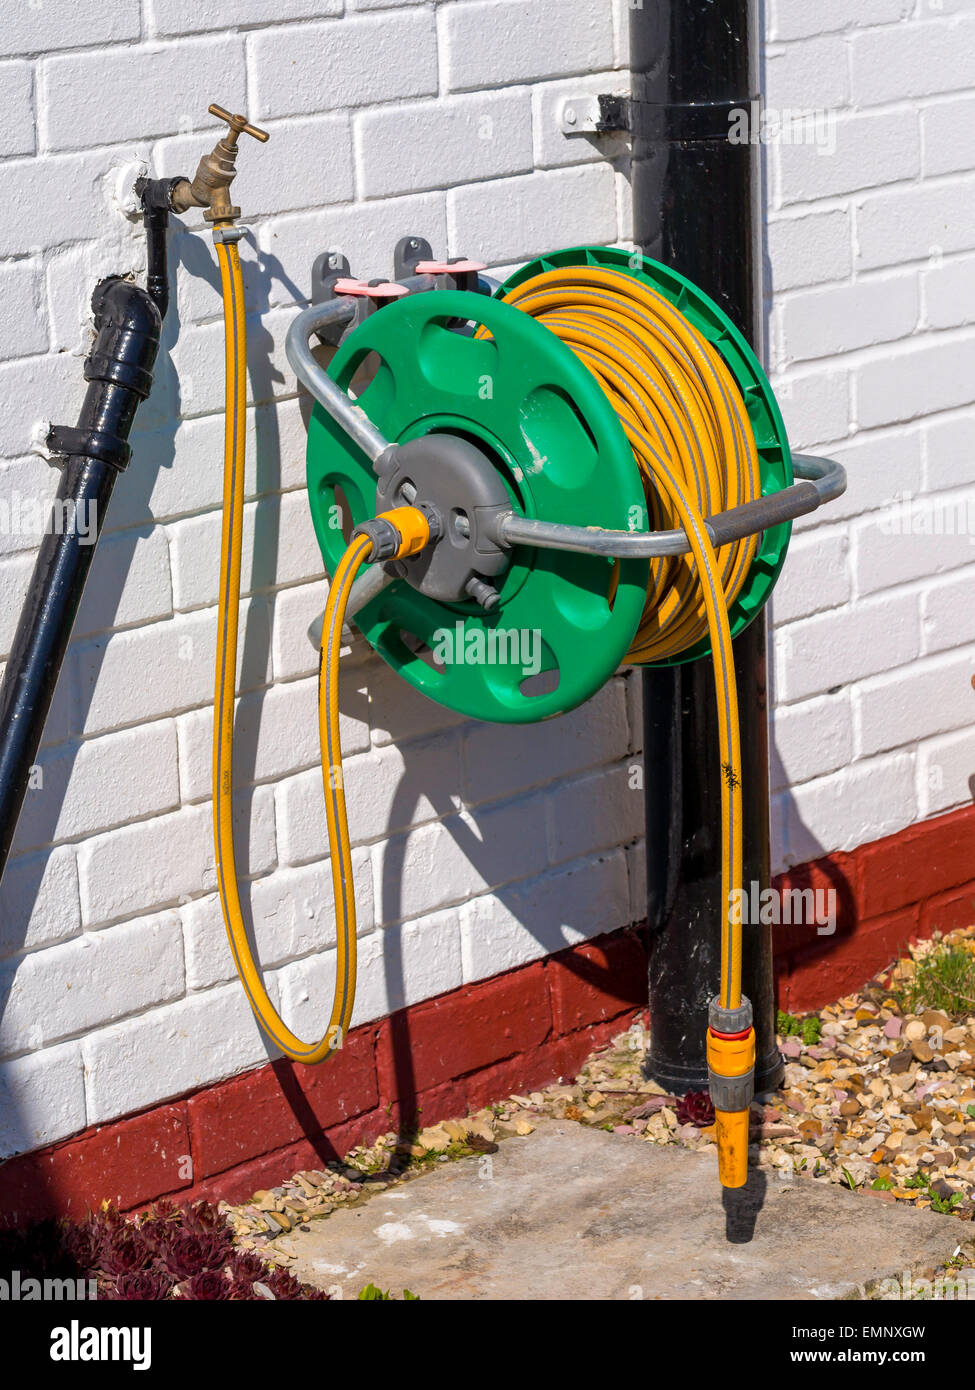 A Garden Hose Reel With Yellow Kink Resisting Hose Wall Mounted